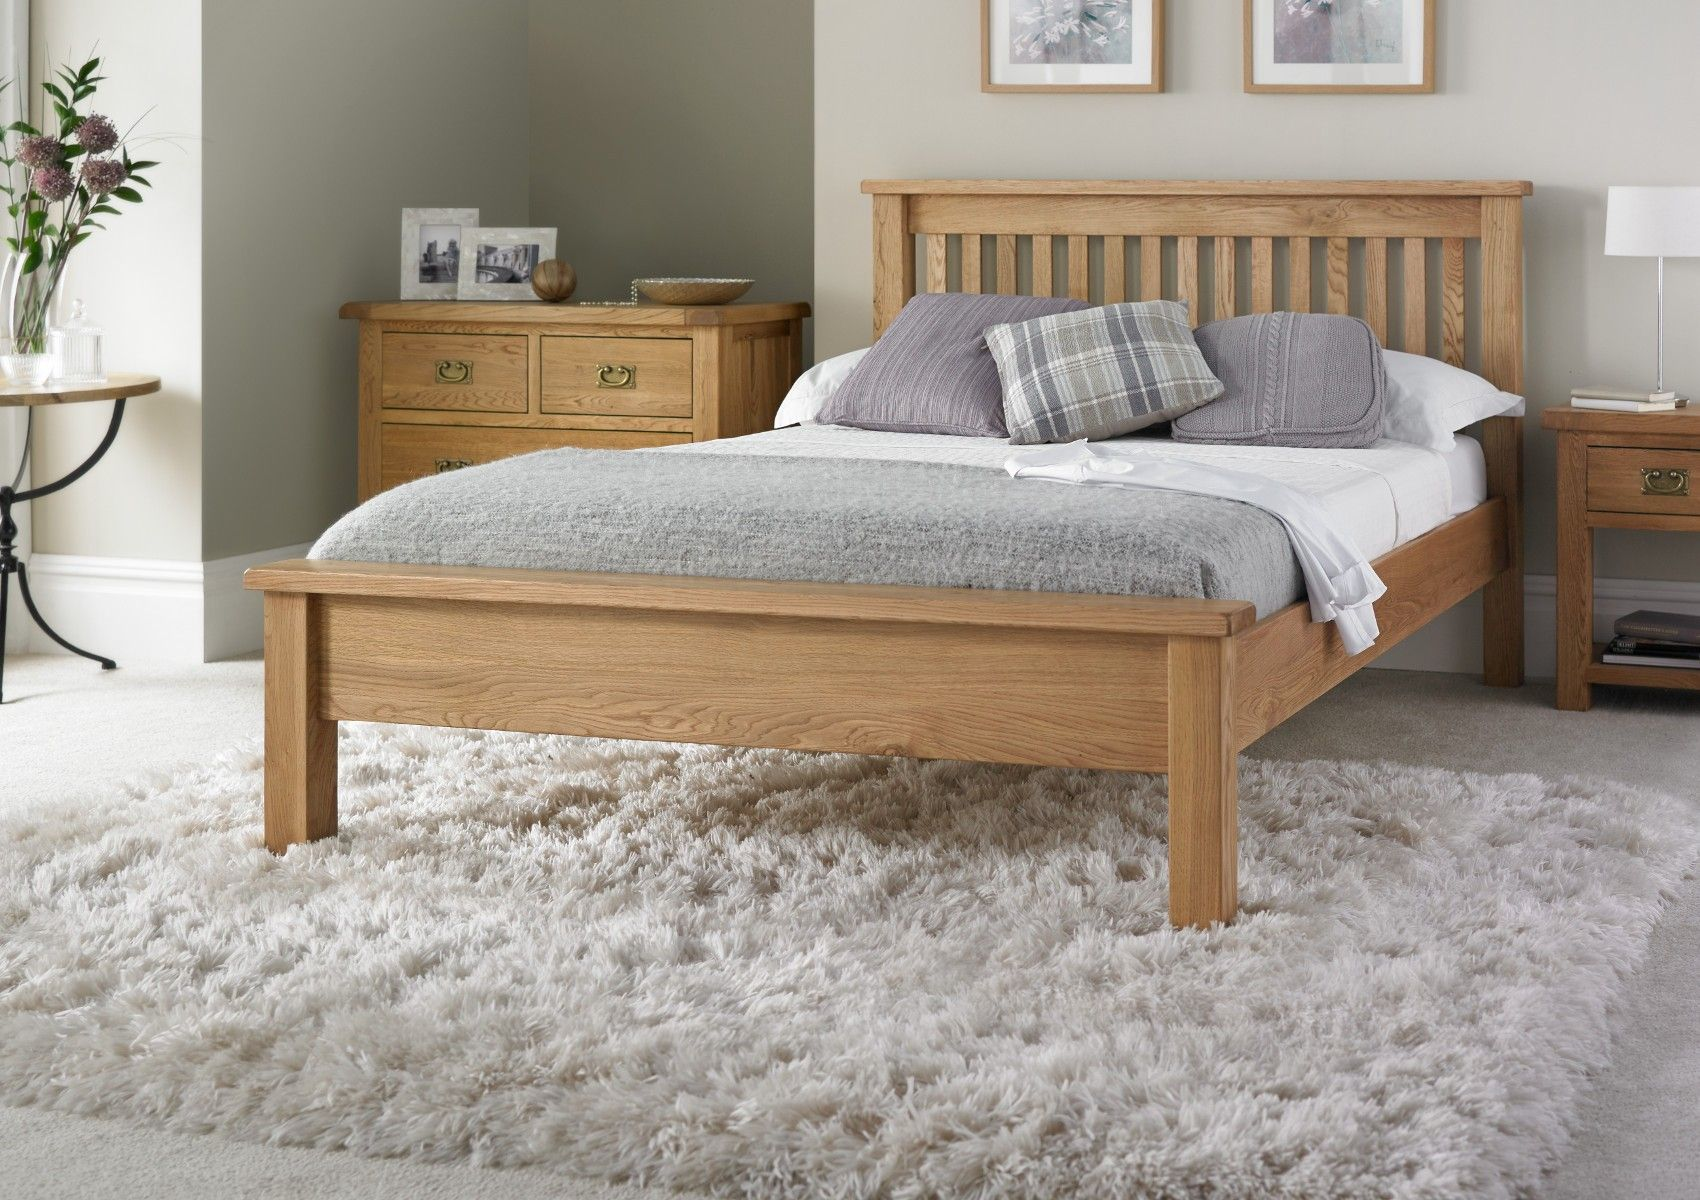 Enjoy the natural beauty of Oak with our new Heritage Oak